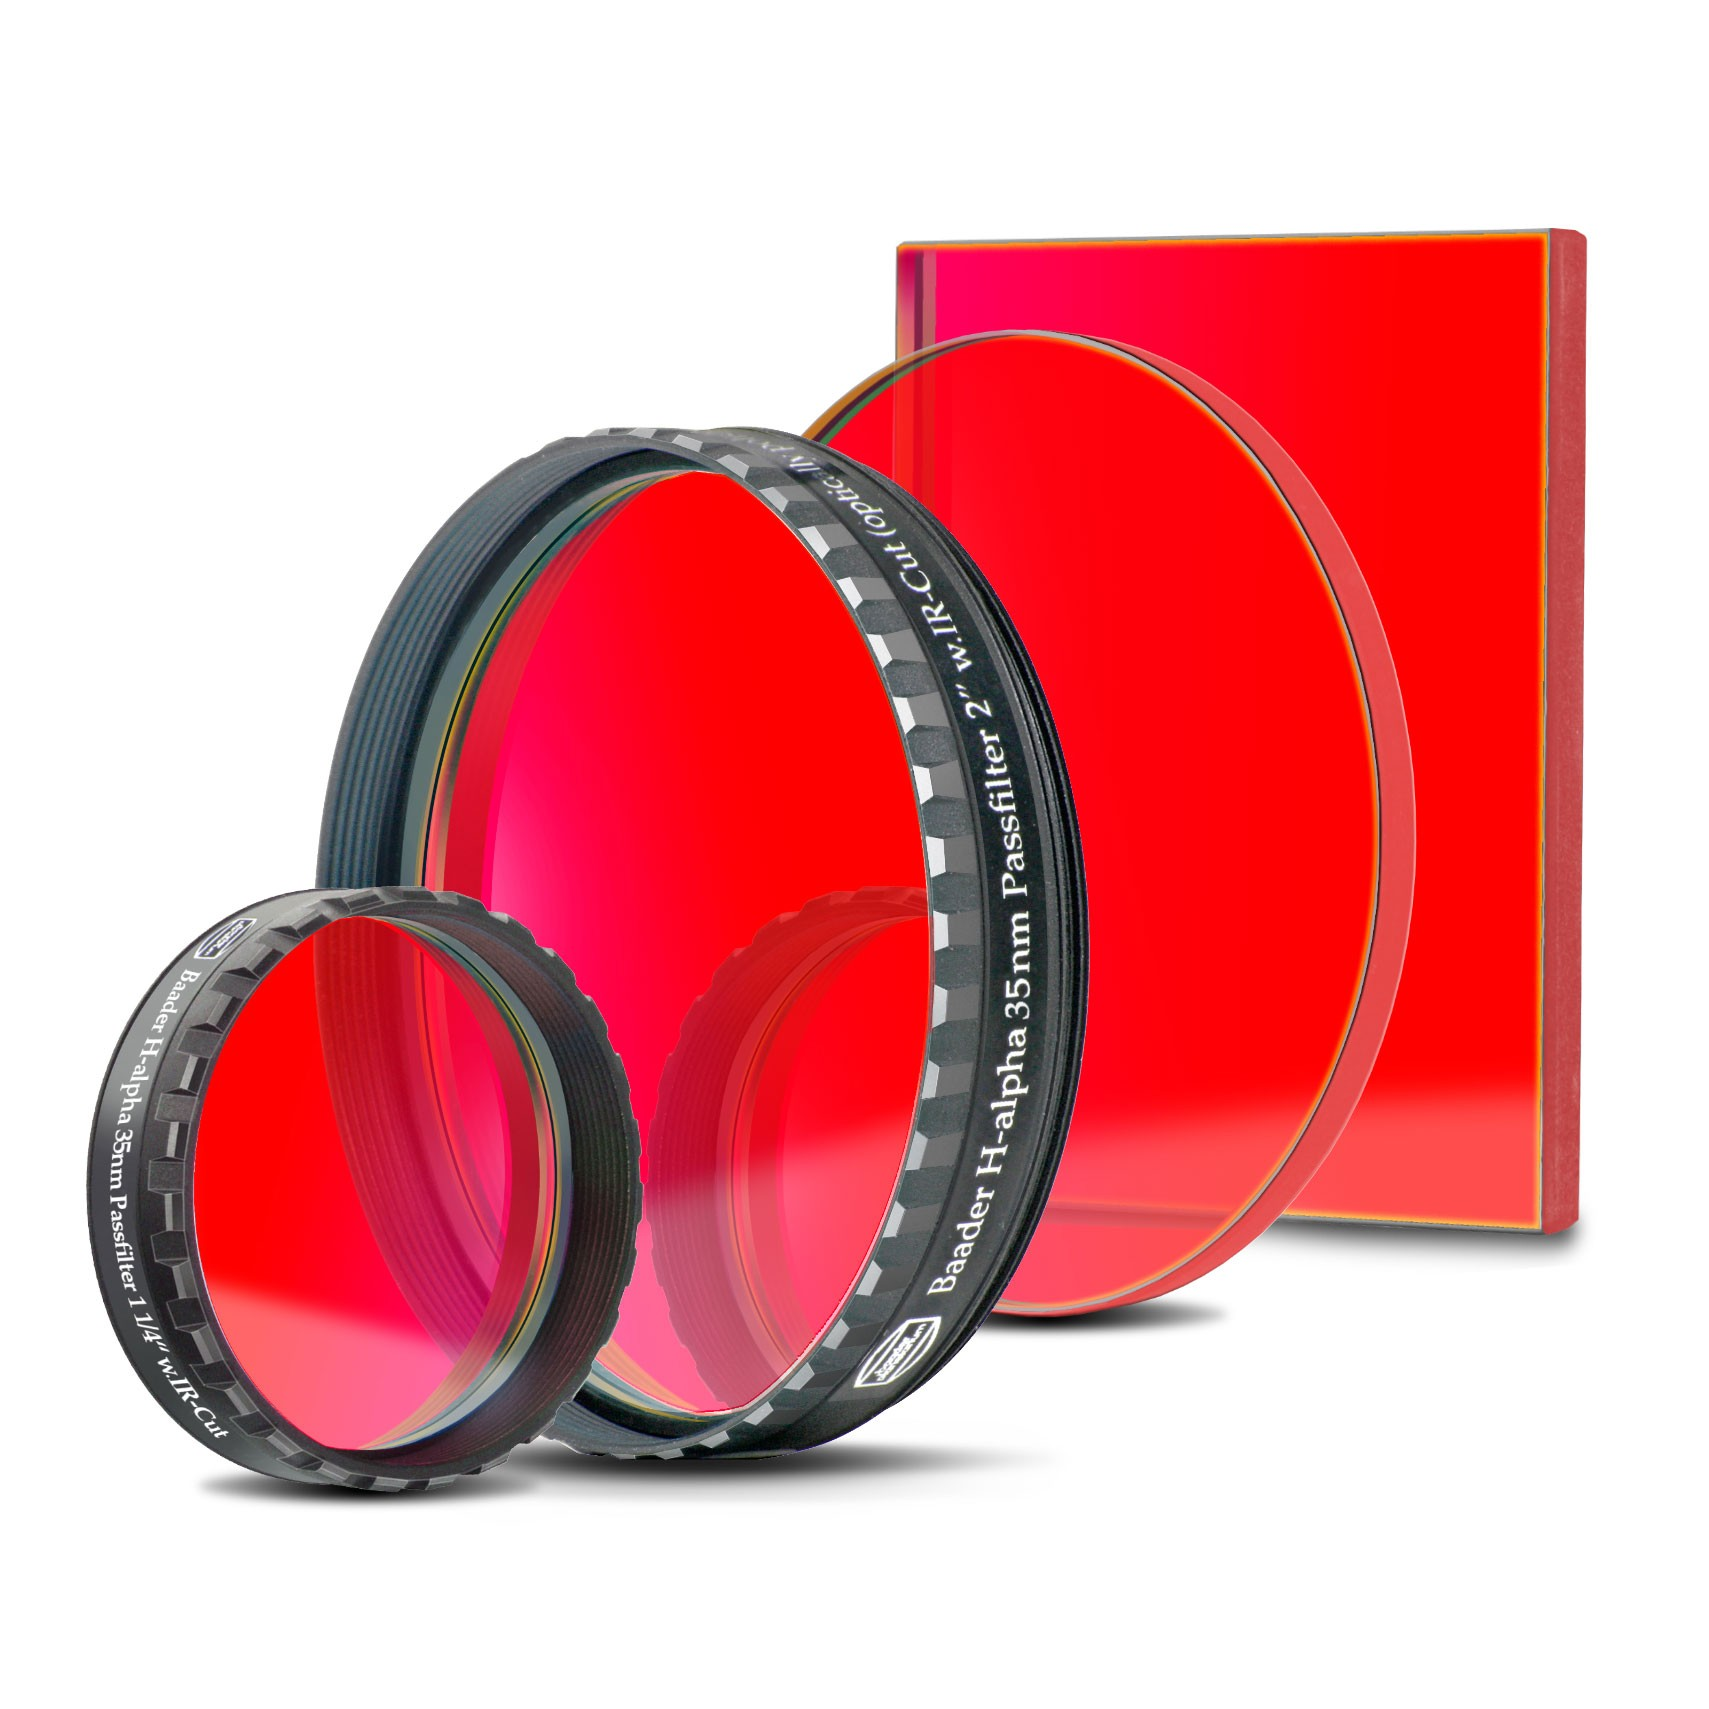 Baader H-alpha 35nm CCD Filter